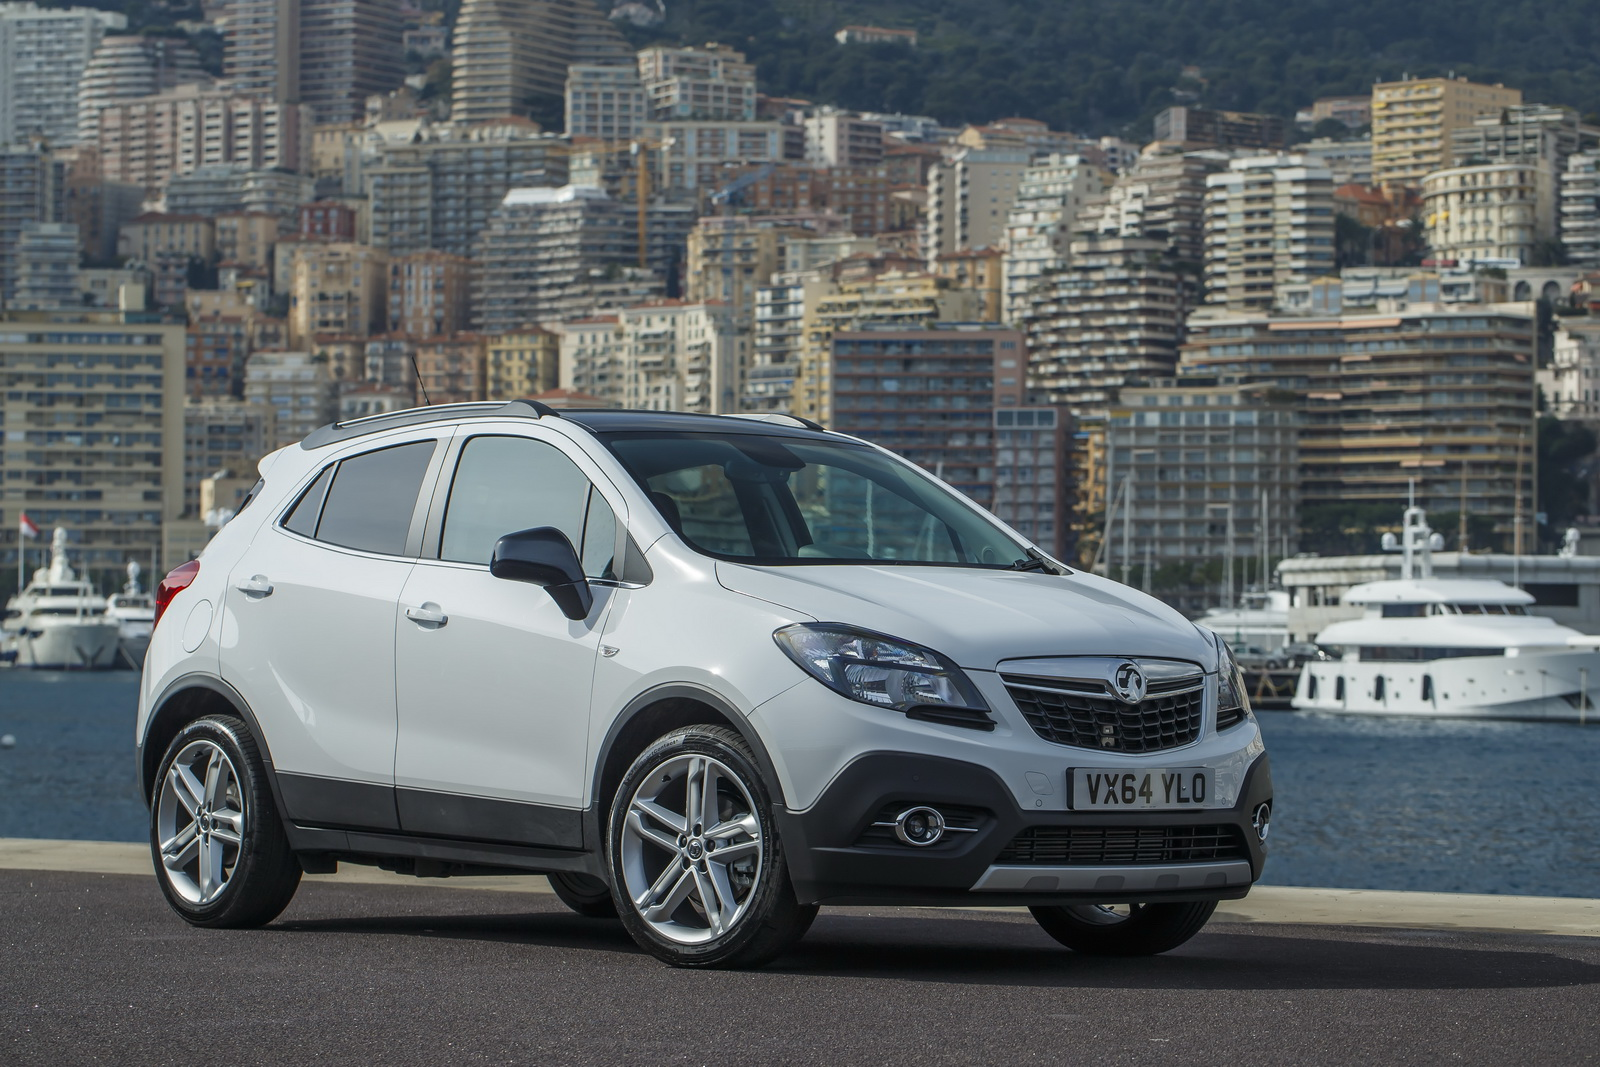 2017 opel mokka x facelift revealed. Black Bedroom Furniture Sets. Home Design Ideas